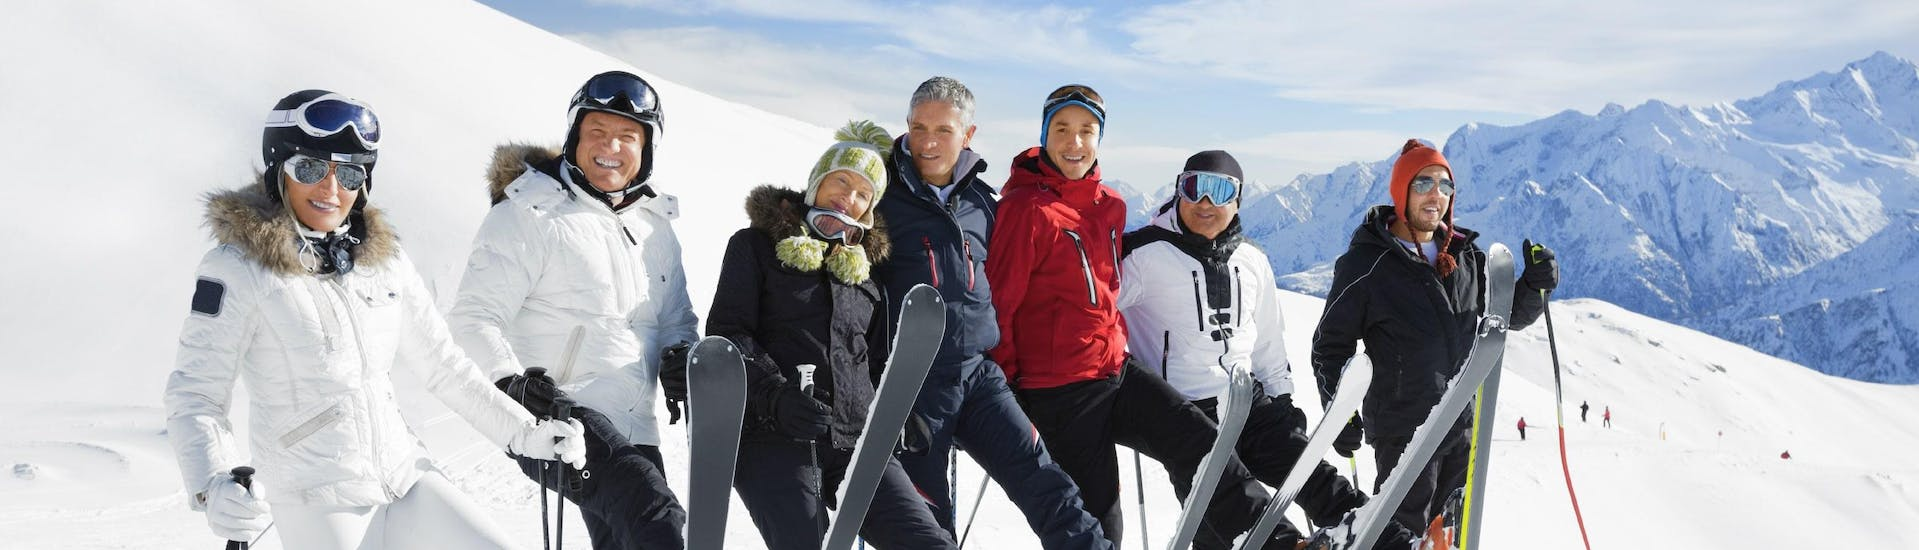 A group of skiers enjoying one of the many ski lessons for adults in the ski resort of Garmisch-Classic .